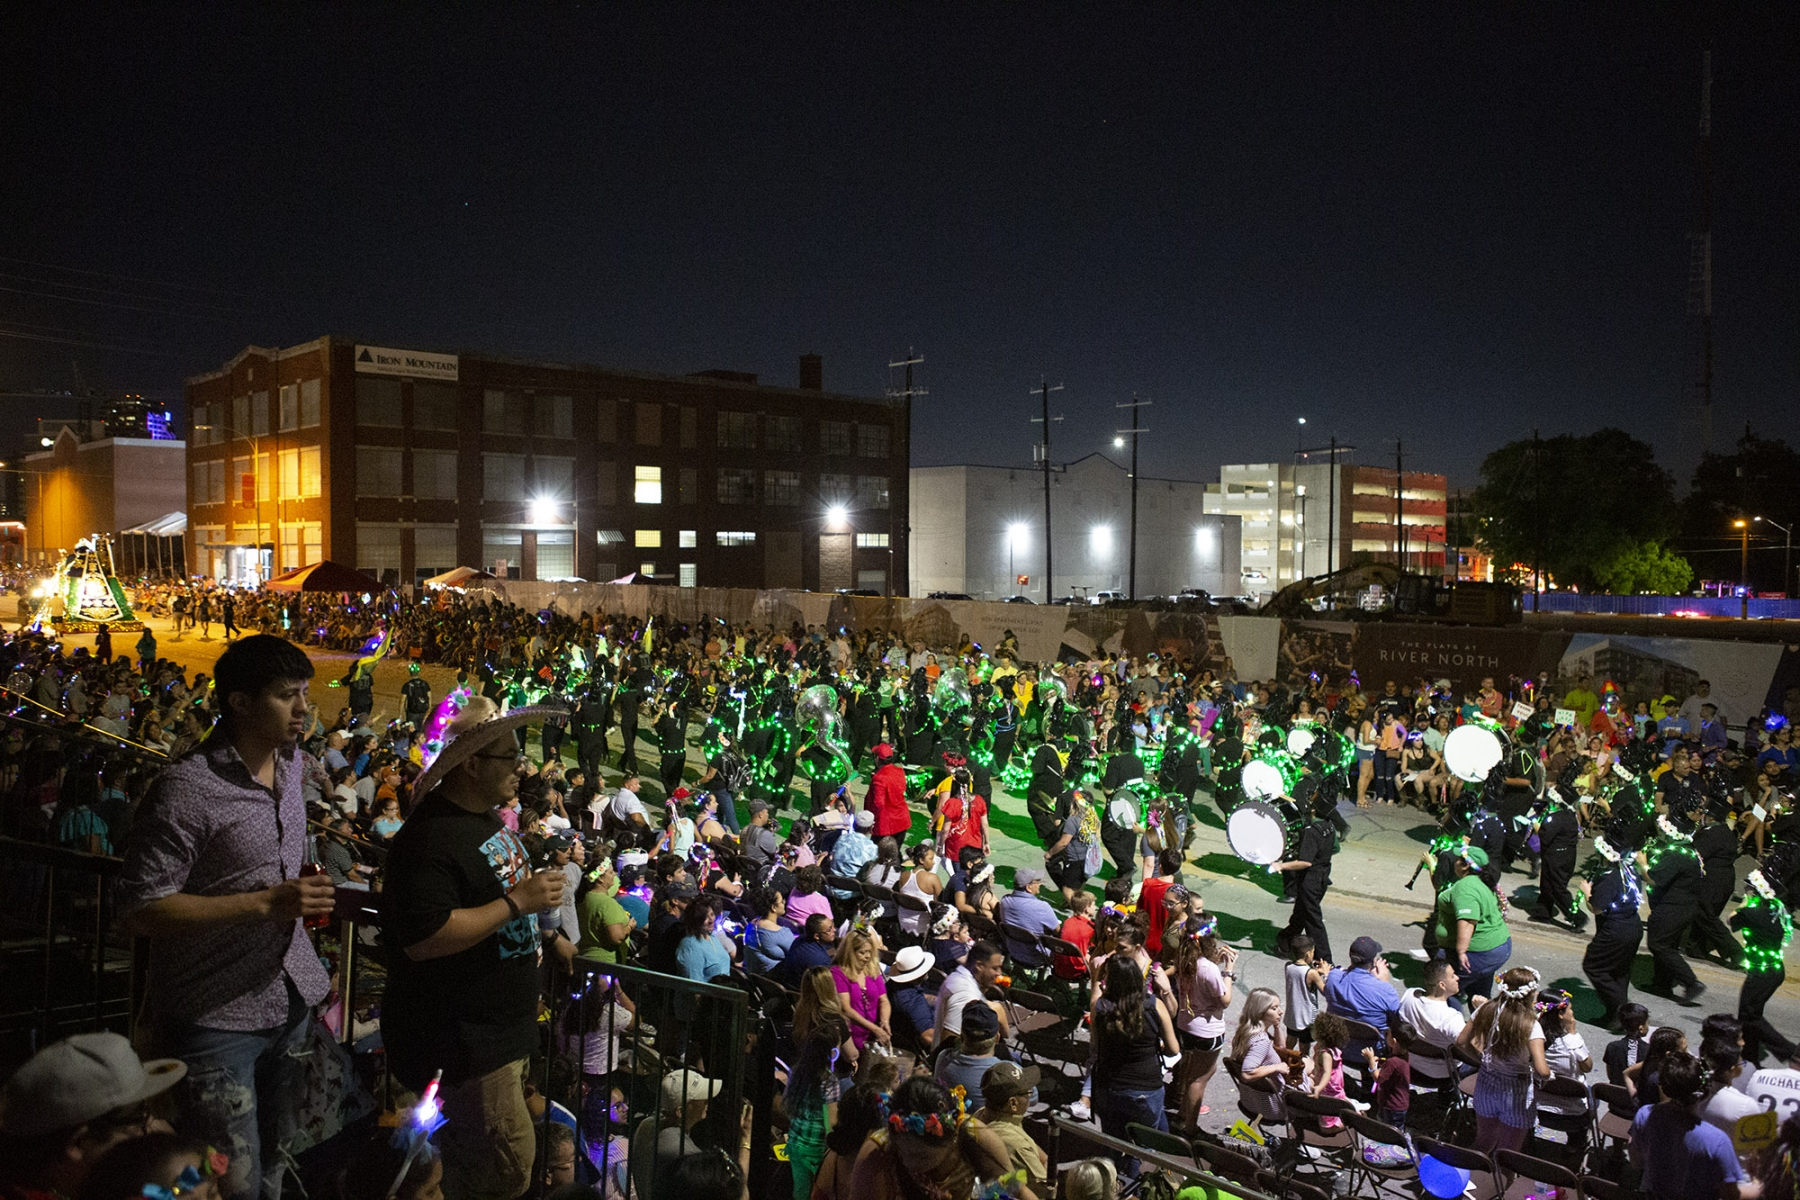 The crowd watches as a band goes by during the Fiesta Flambeau Parade on Saturday, April 27. <em>Photo by Kara Hawley | Heron contributor</em>